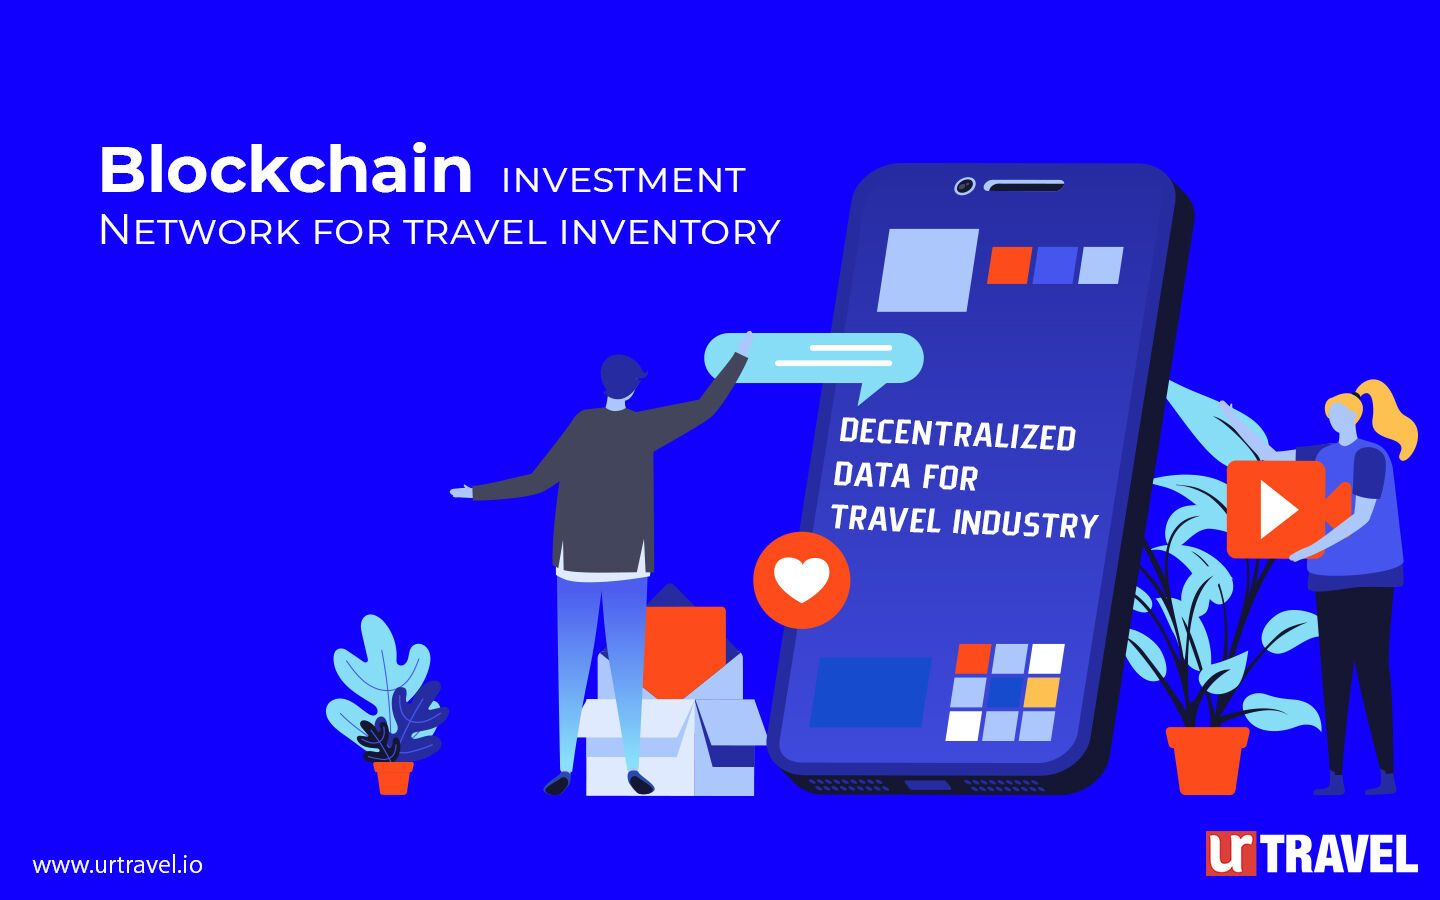 Blockchain Investment Network For Travel Inventory For